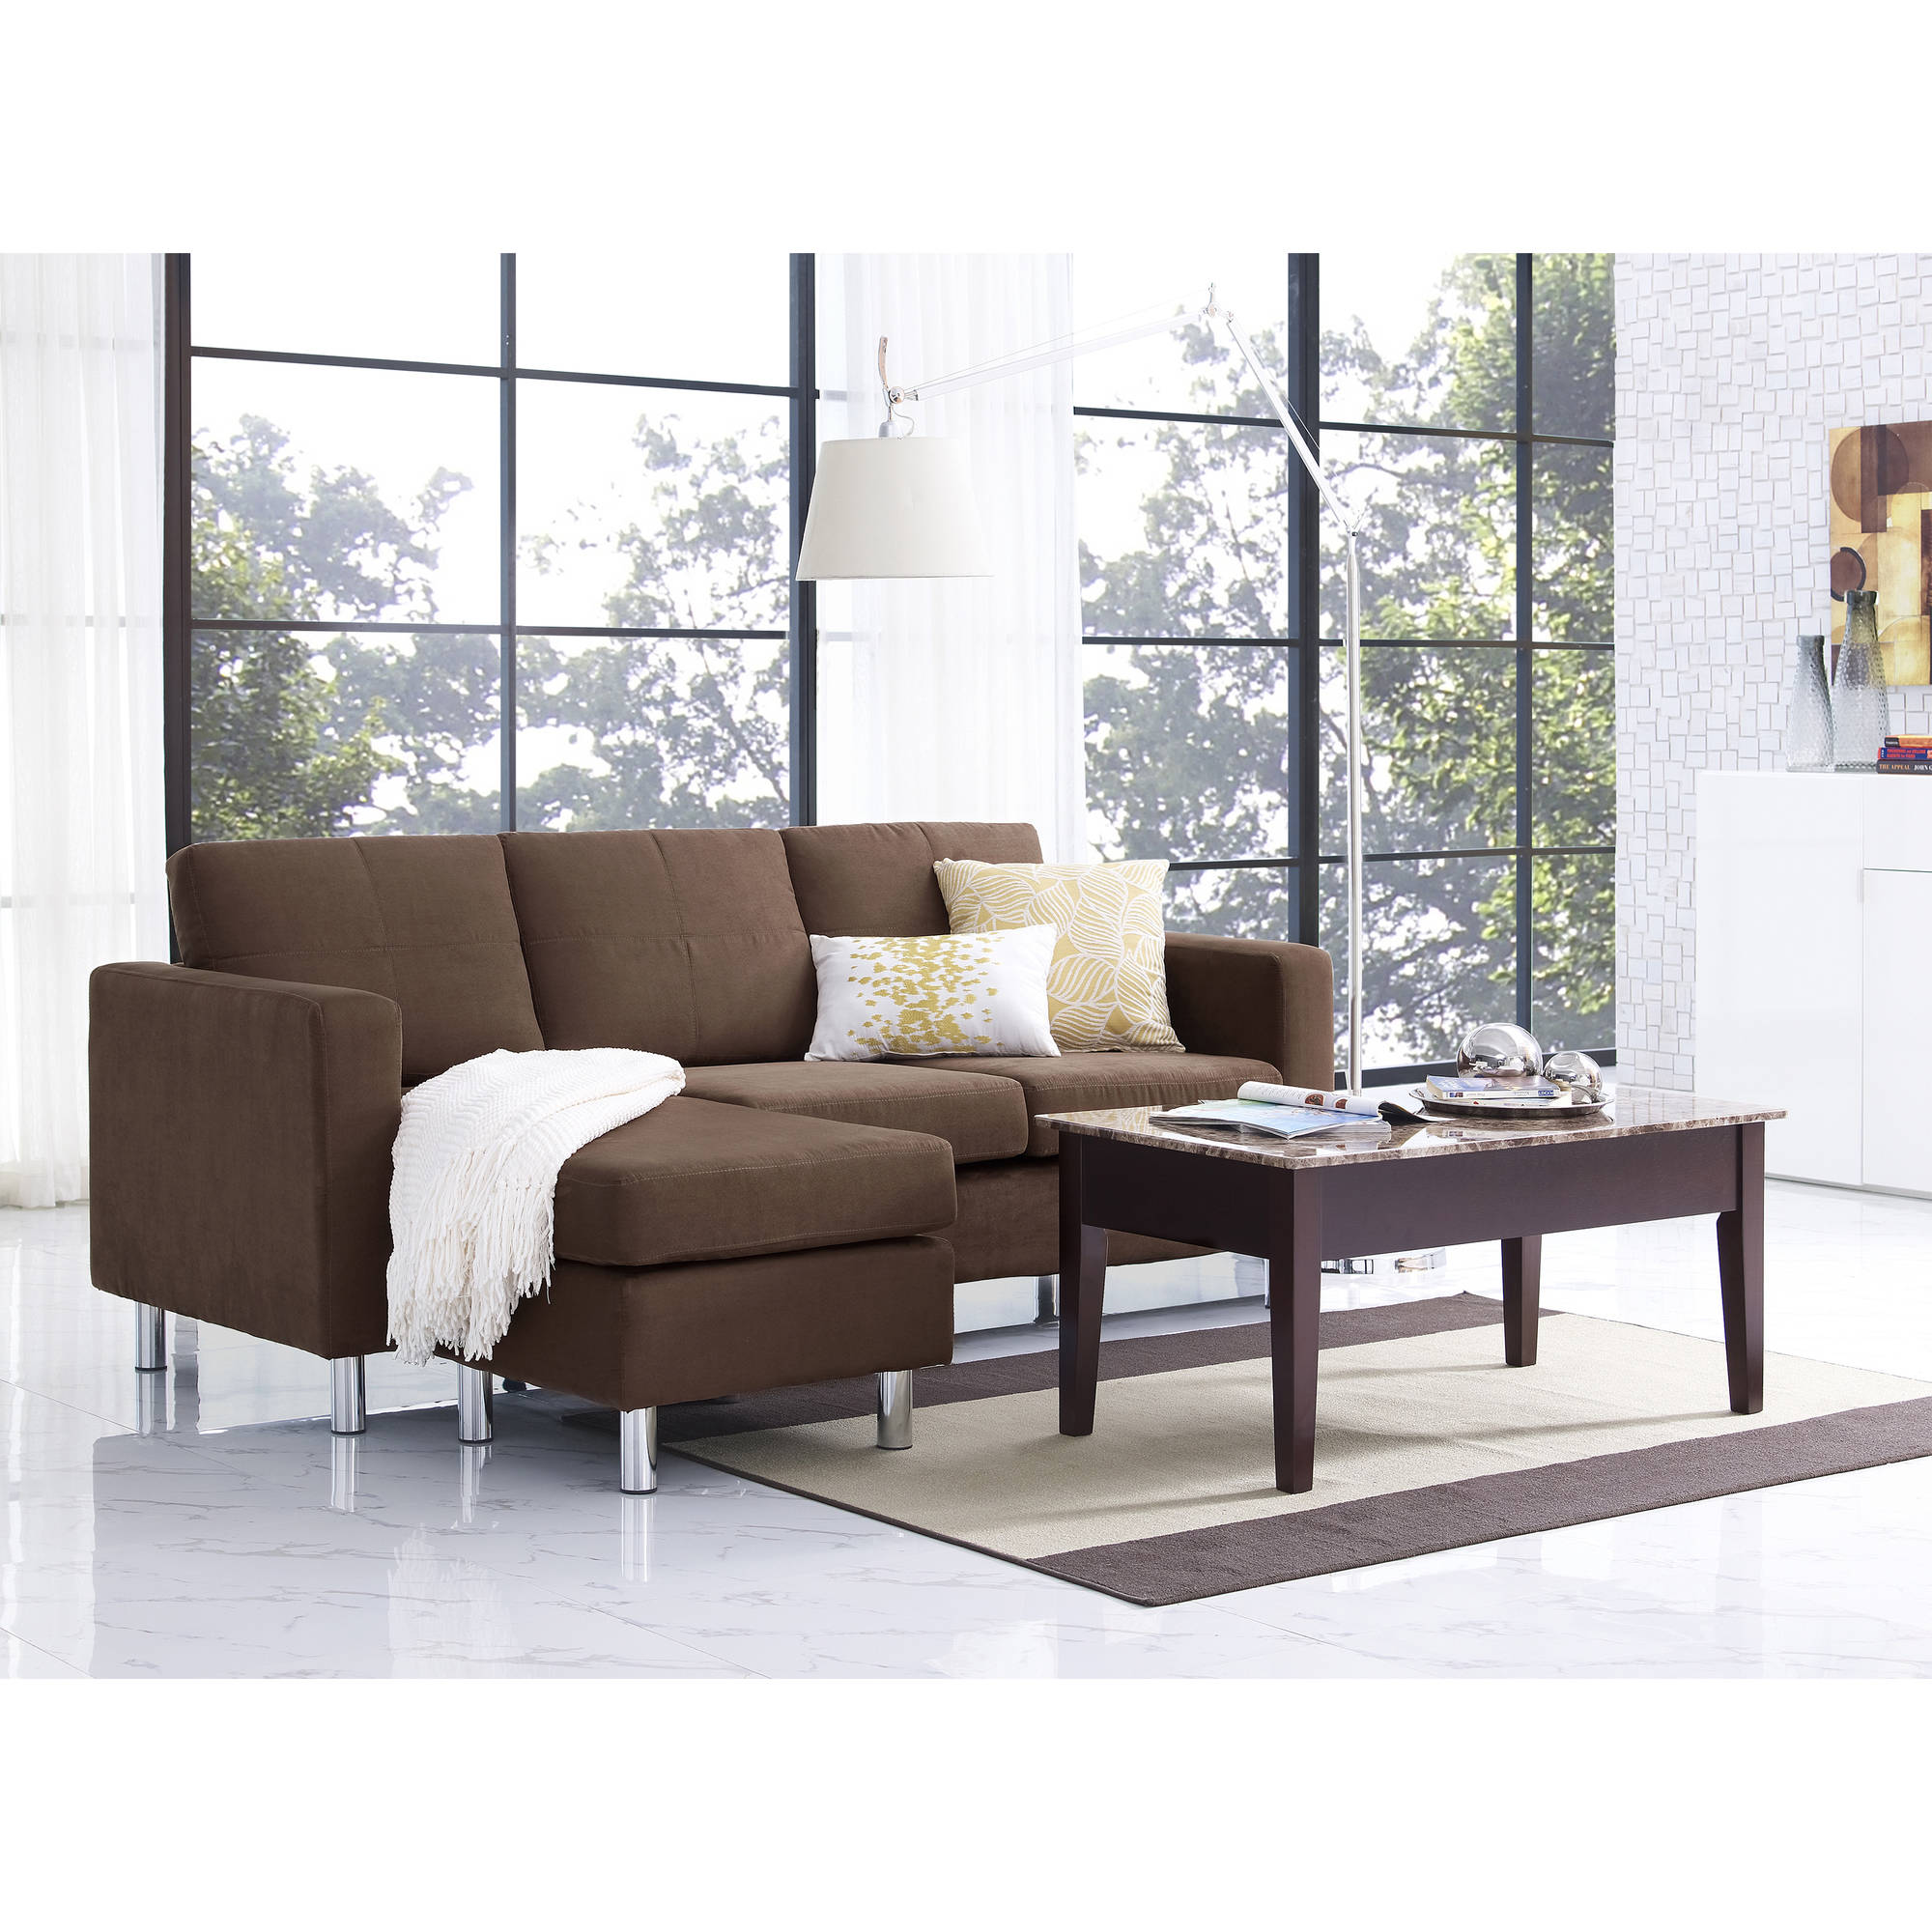 sectional rest decor products pc hamilton stoney room living ontario browse toronto sofa beige sectionals creek sofas vaughan